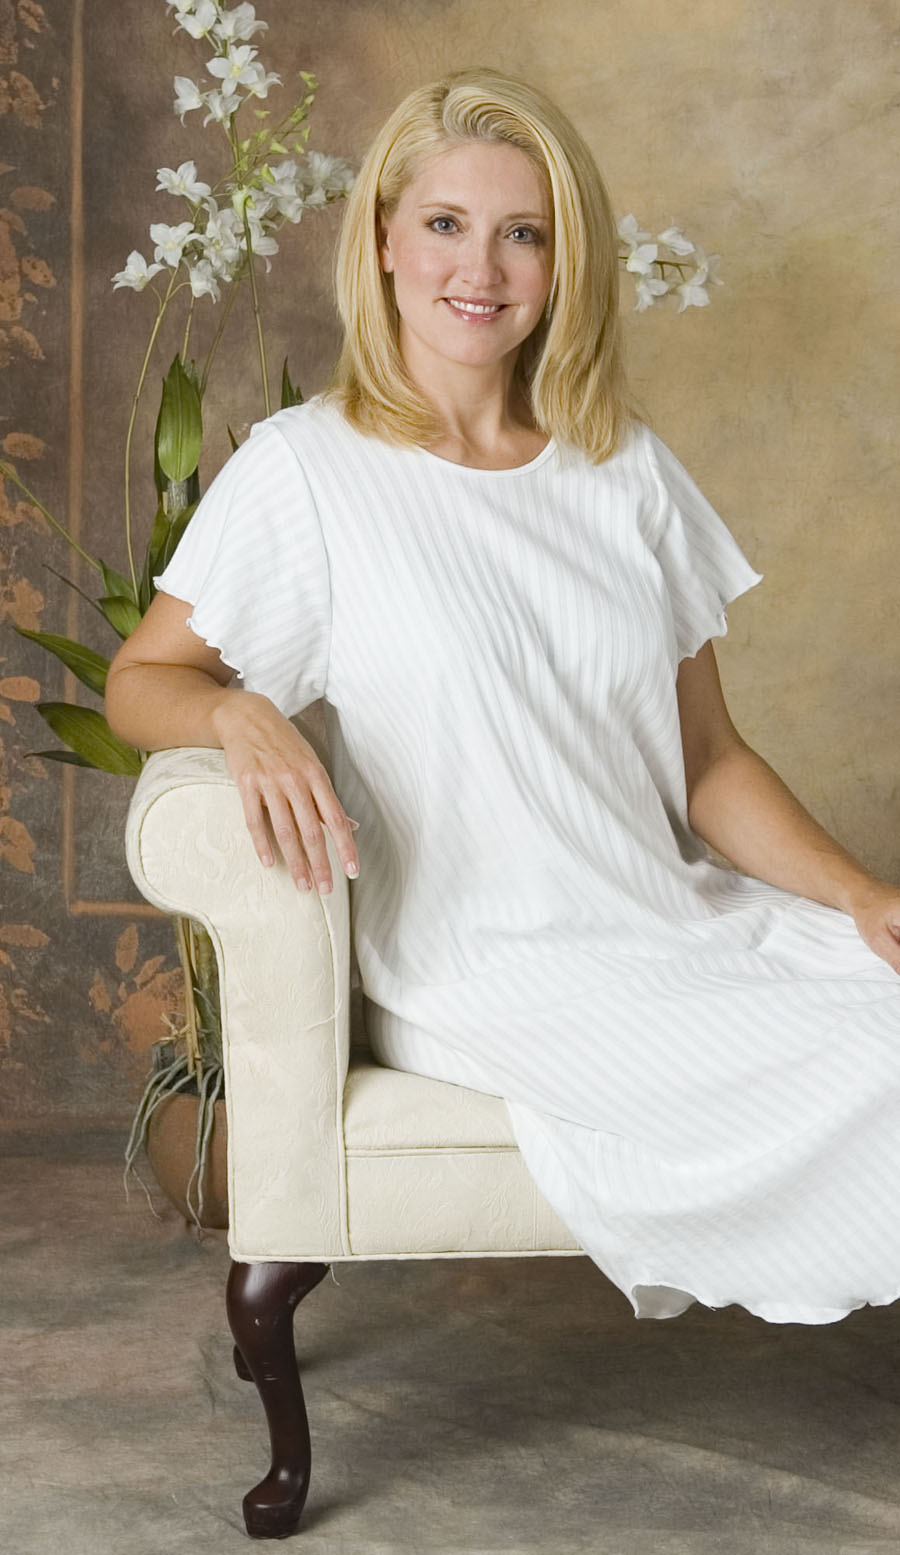 Simple Pleasures Sleepwear designs and produces cotton sleepwear that is  made in the USA. We offer quality loungewear that you are sure to enjoy. b1c0663d7